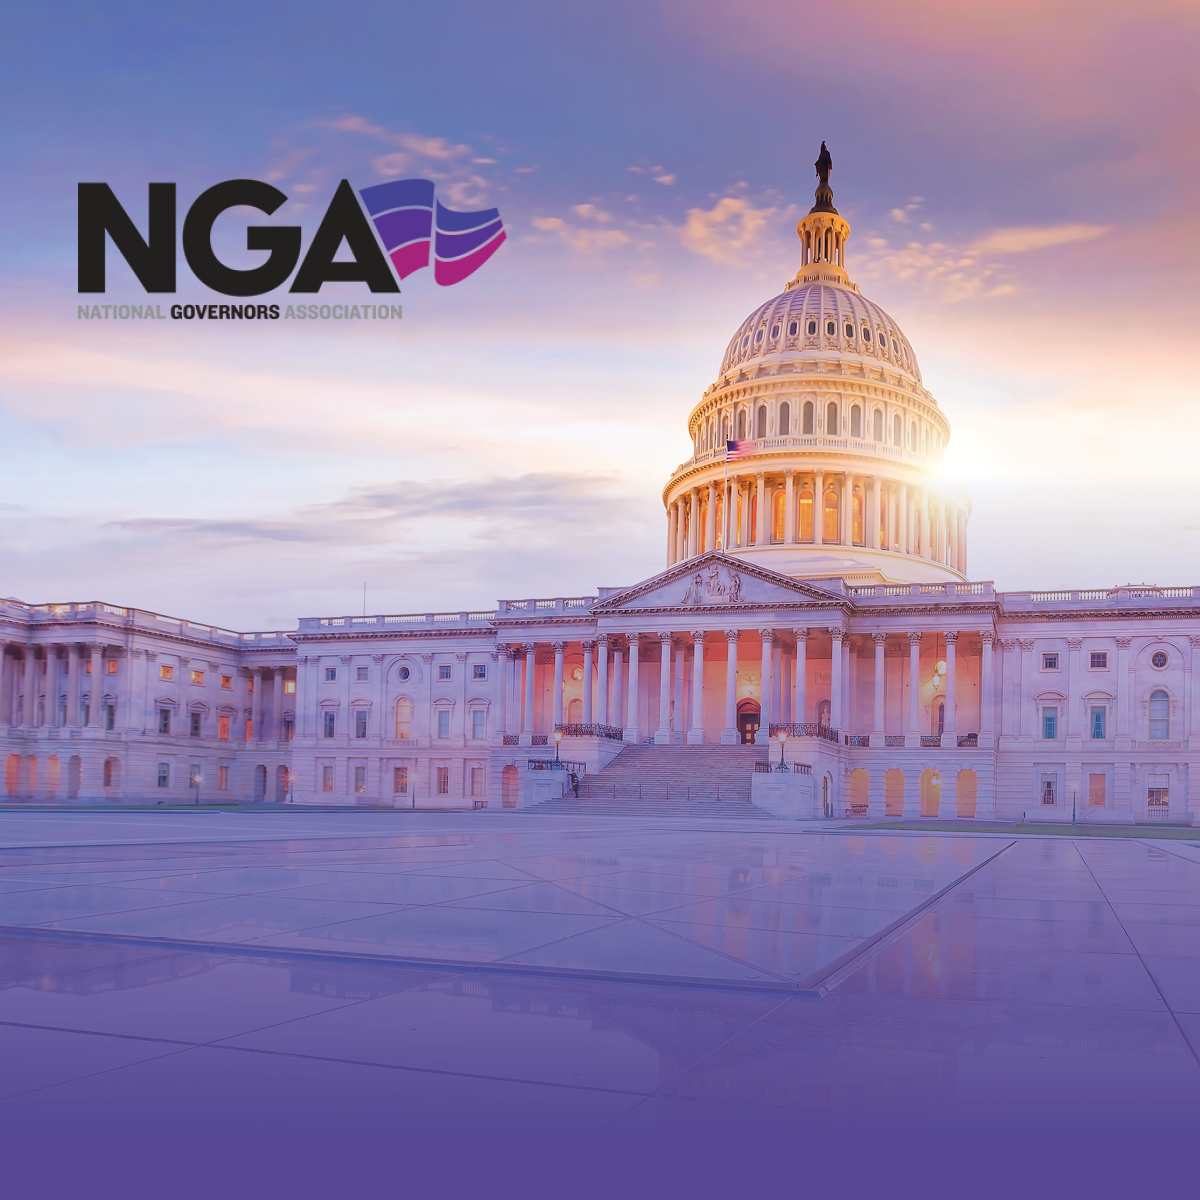 April_NEWS National Governors Association